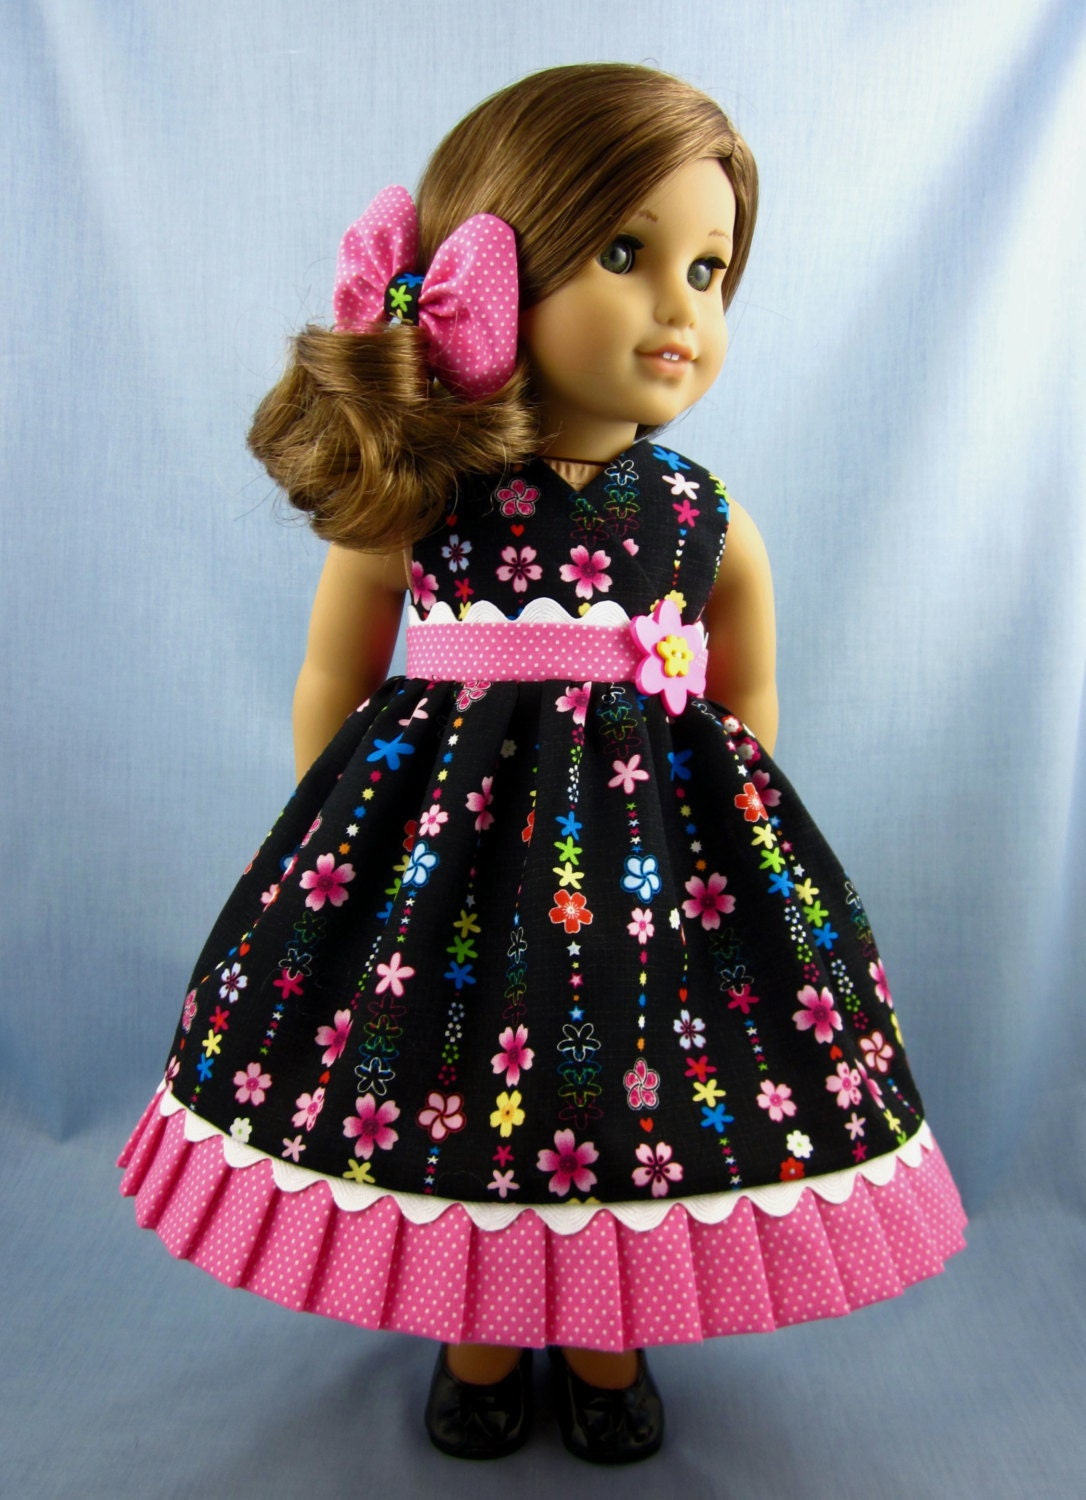 18 Inch Doll Clothes Sundress And Hair Bow In Black And